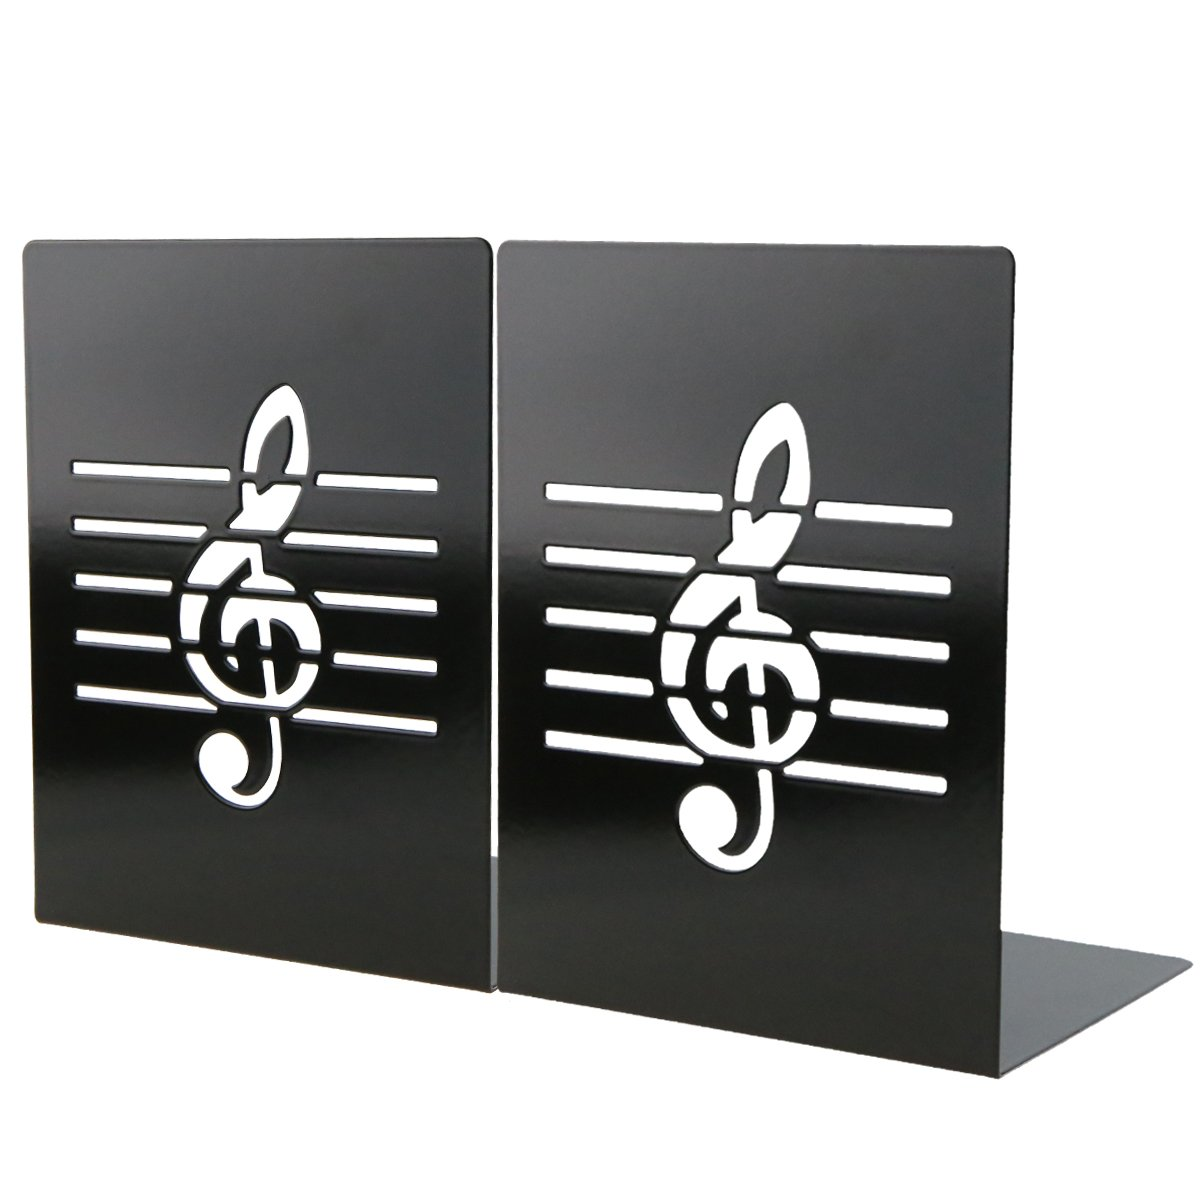 Unique Music Notes Book Stands Metal Bookends For Kids School Library Desk Study Home Office Decoration Gift(Black) by Apol (Image #1)